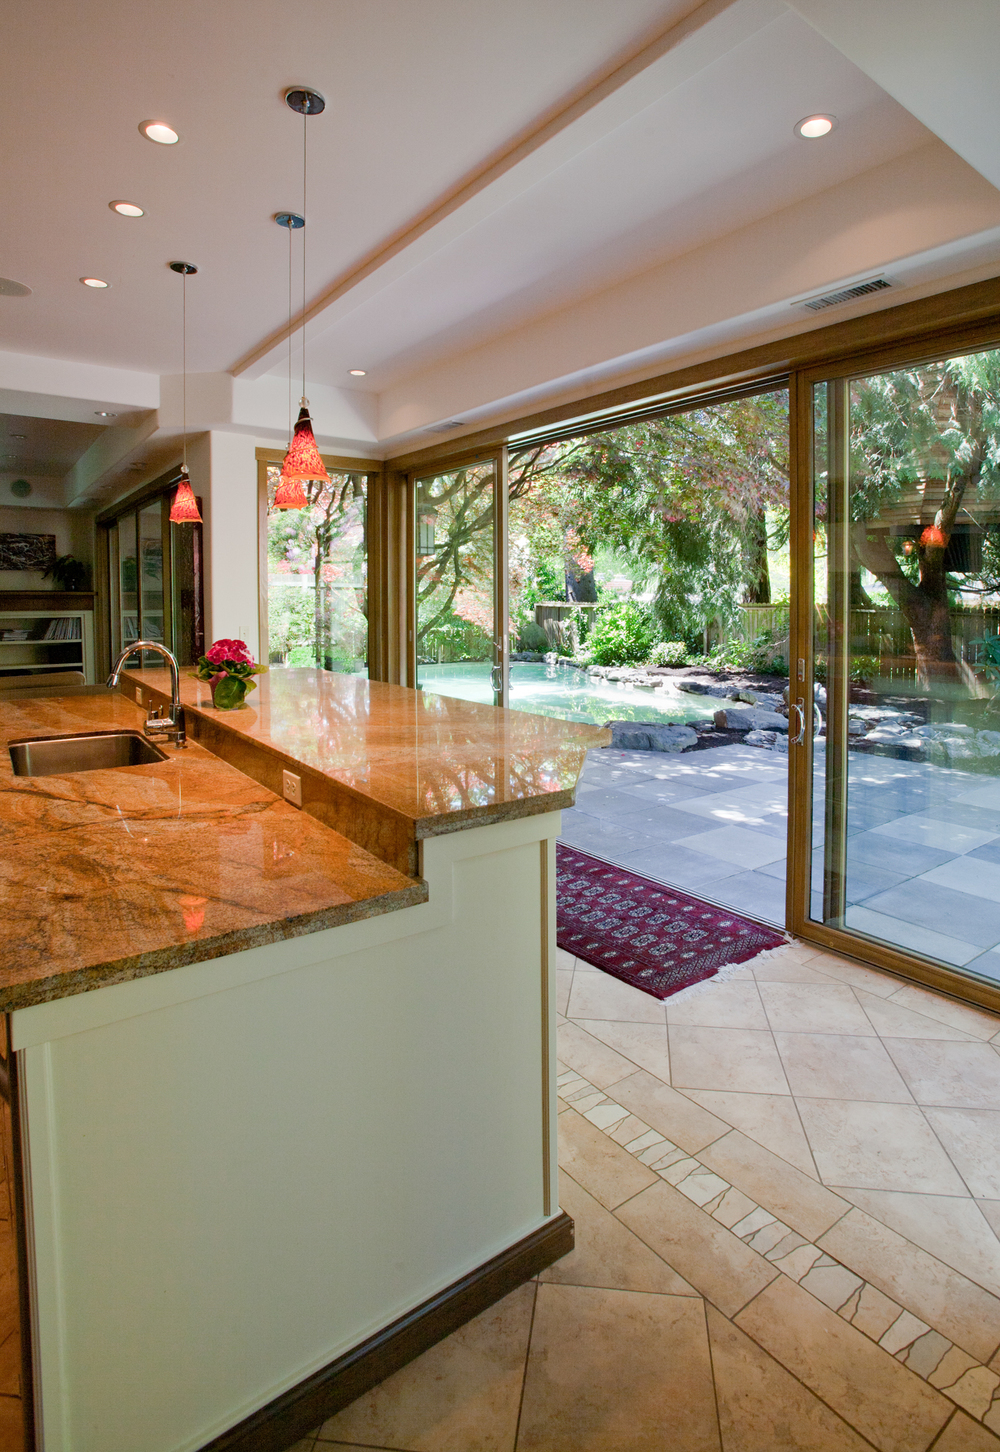 A view of the pool from inside the kitchen through the glass walls.